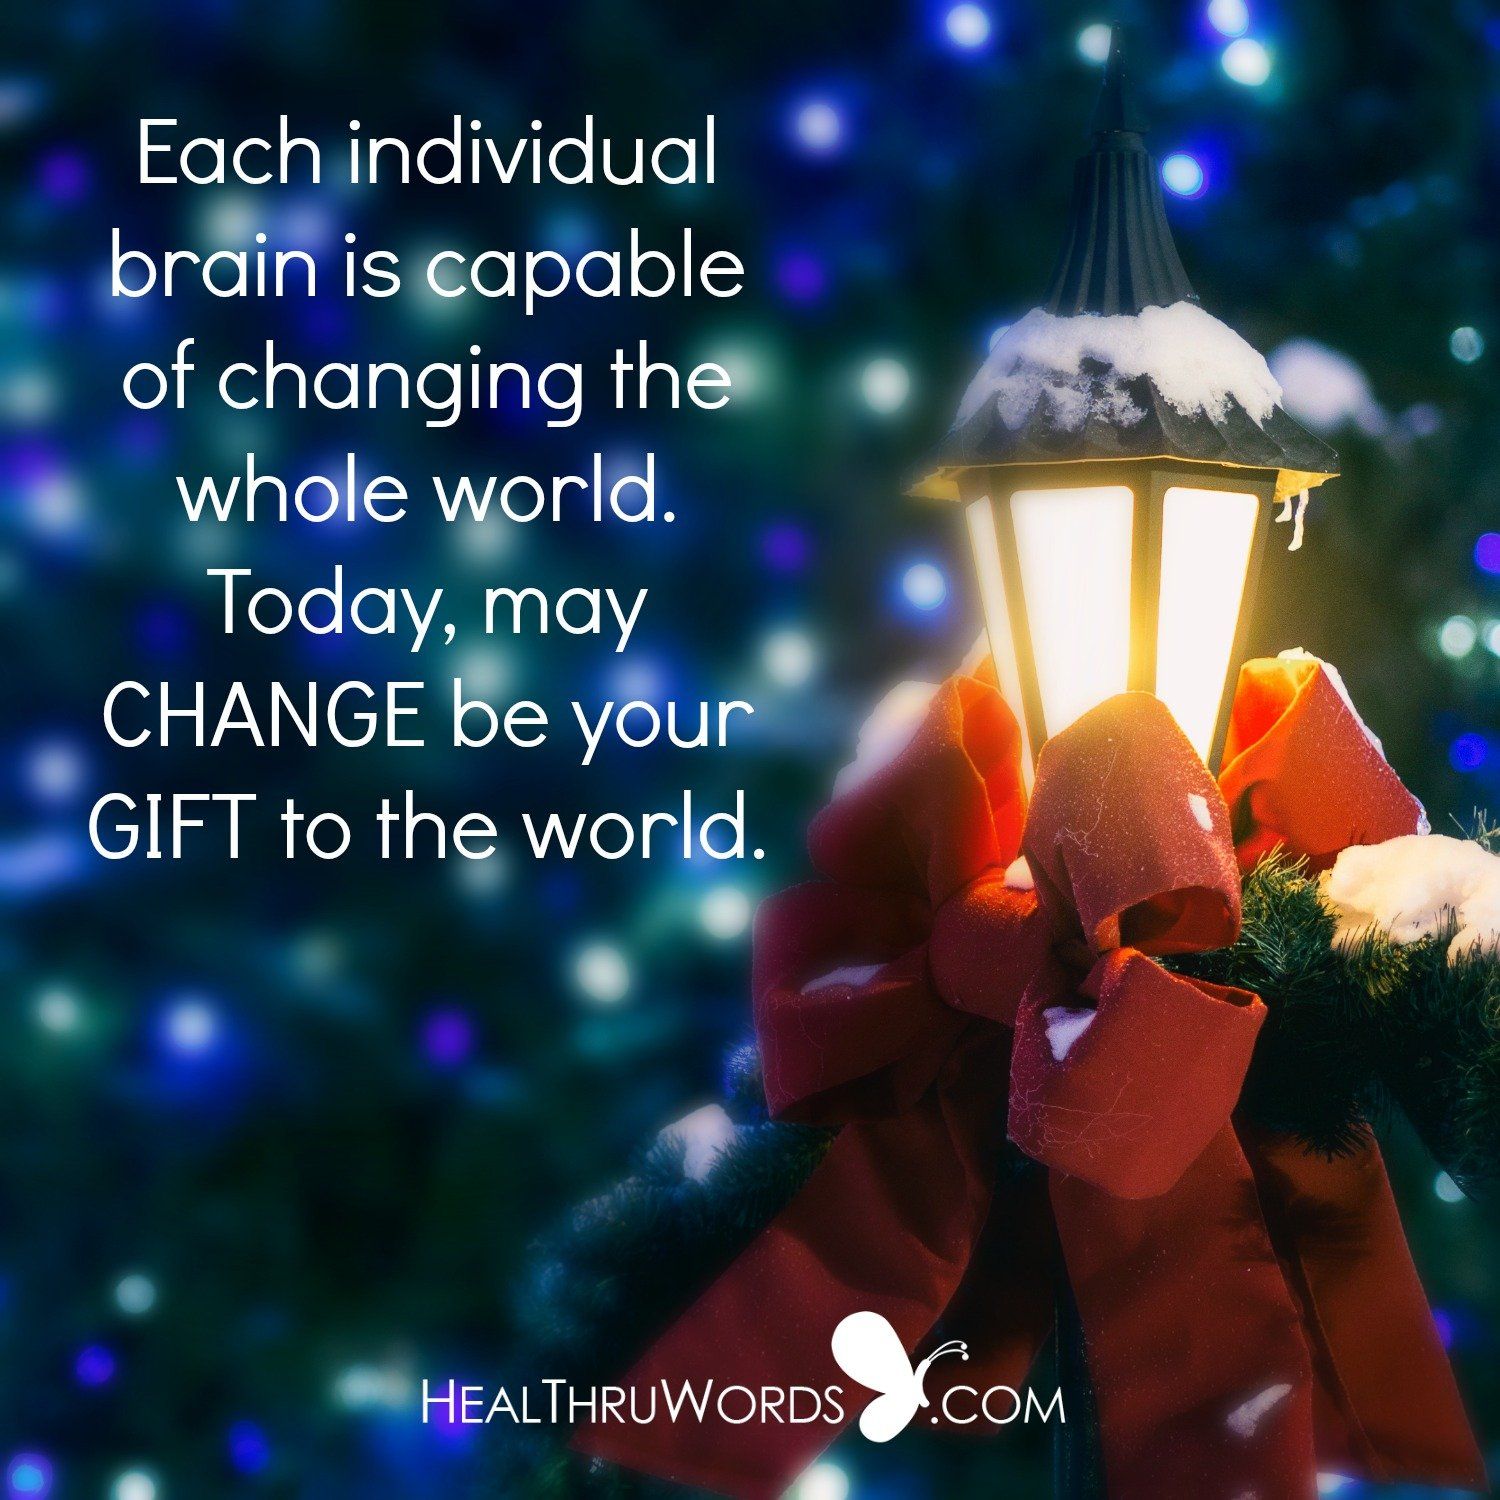 Inspirational Image: Your Gift To The World